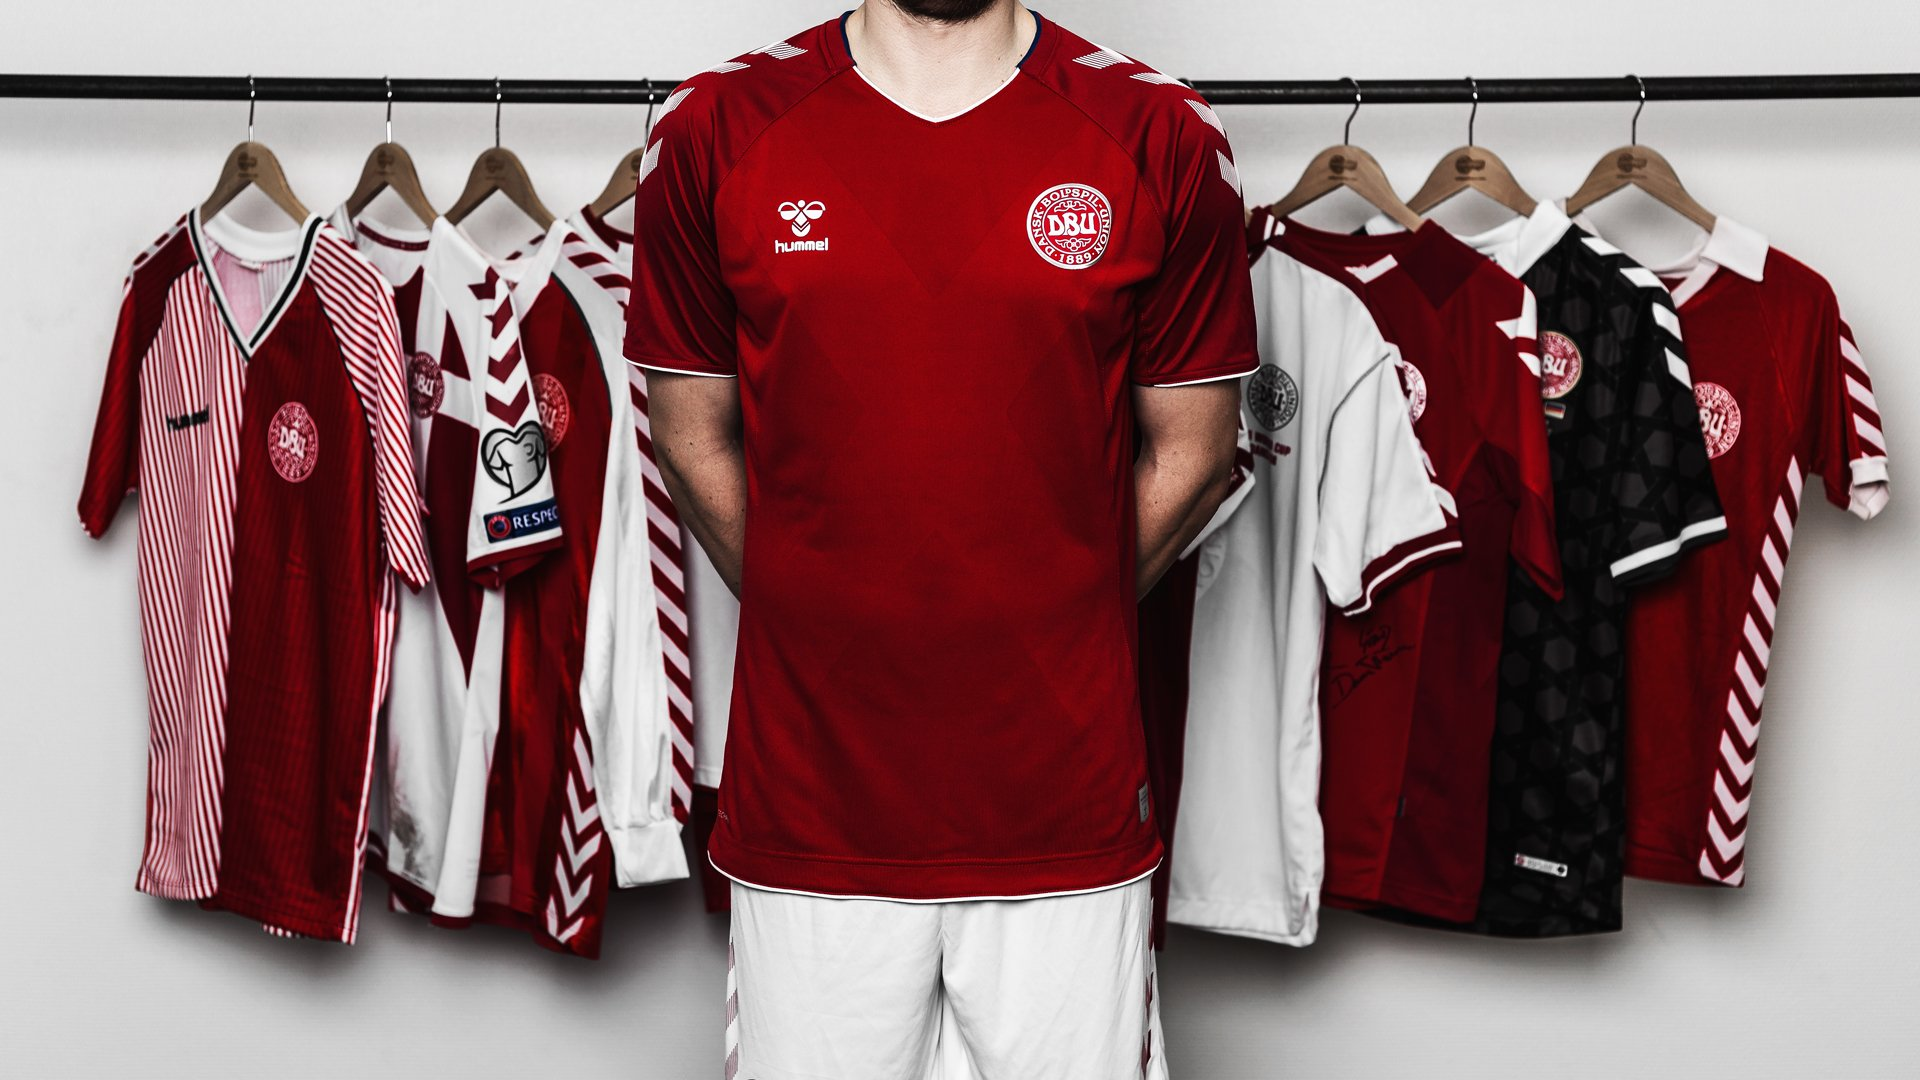 World Cup shirts inspired by the Danish Royal Guard 81c398706